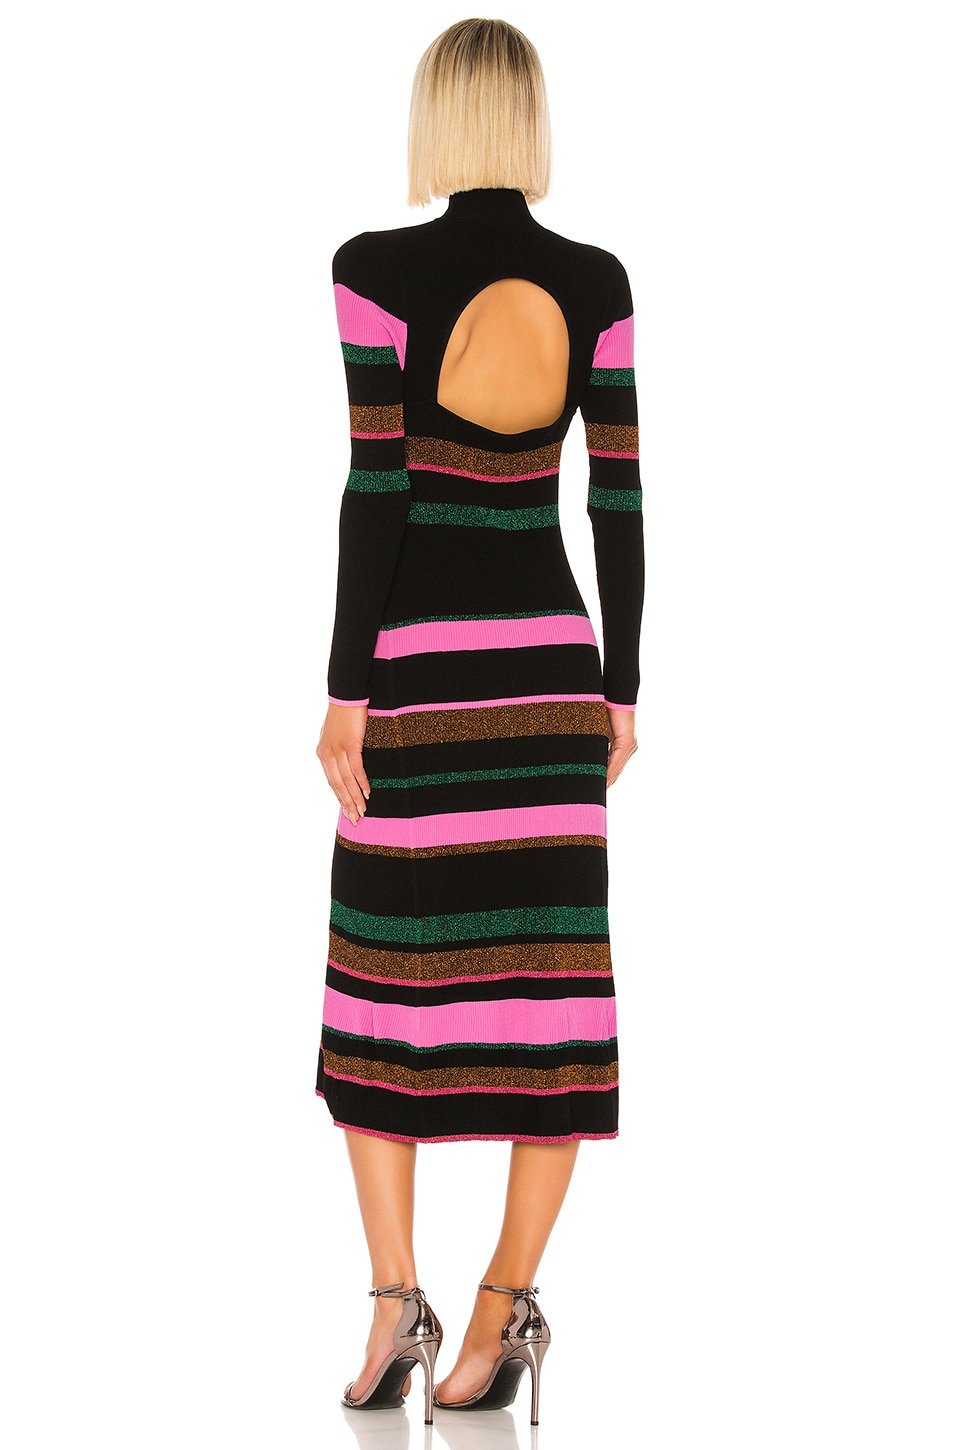 Tanya Taylor Dresses Velma Knit Dress